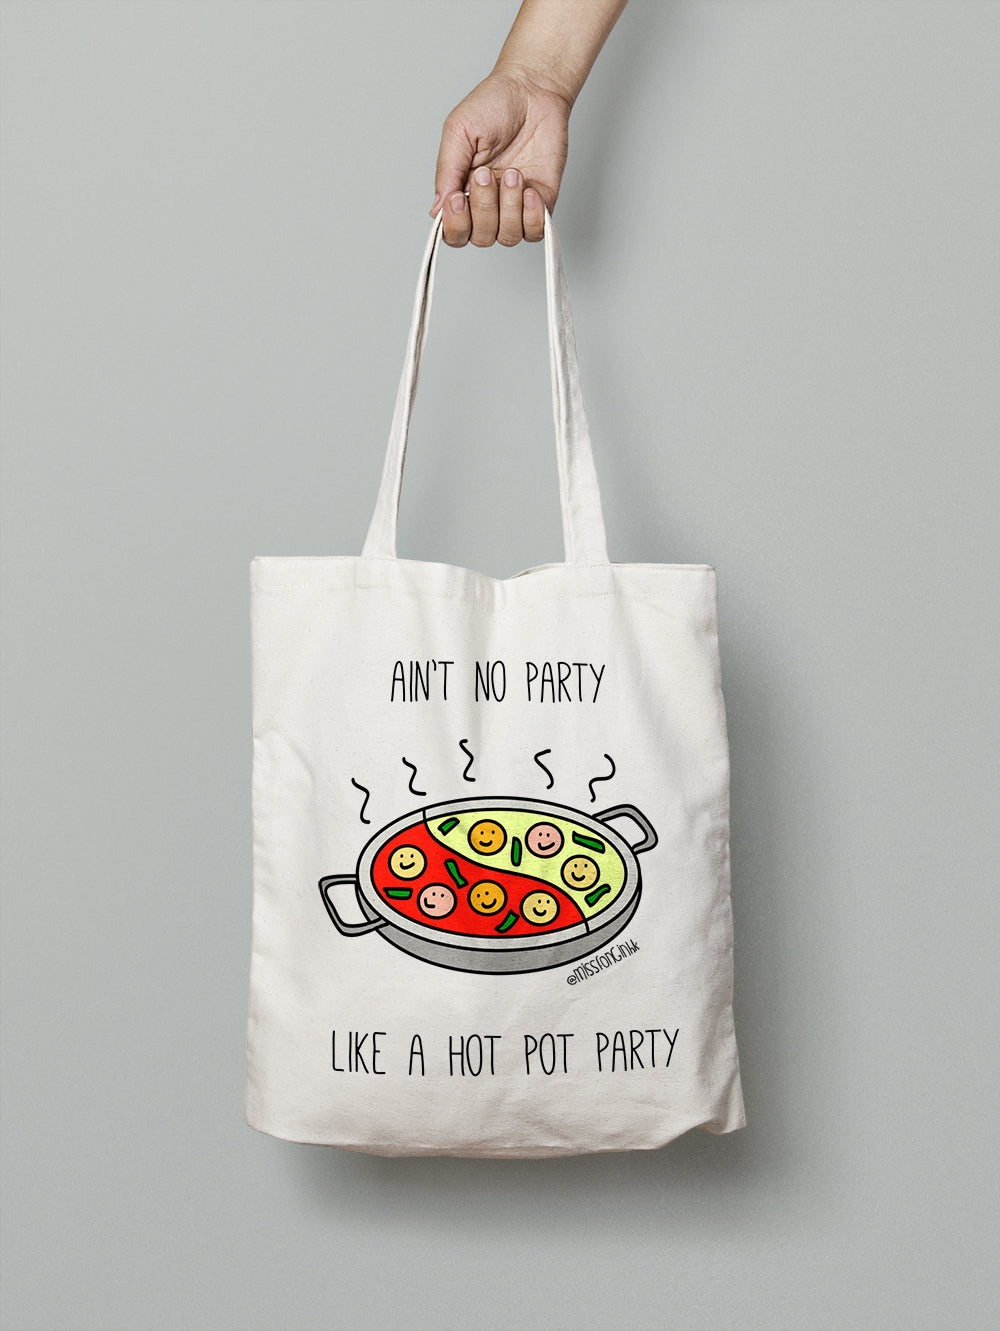 Miss Fong in Hong Kong: Hot Pot Party Cotton Canvas Tote Bag